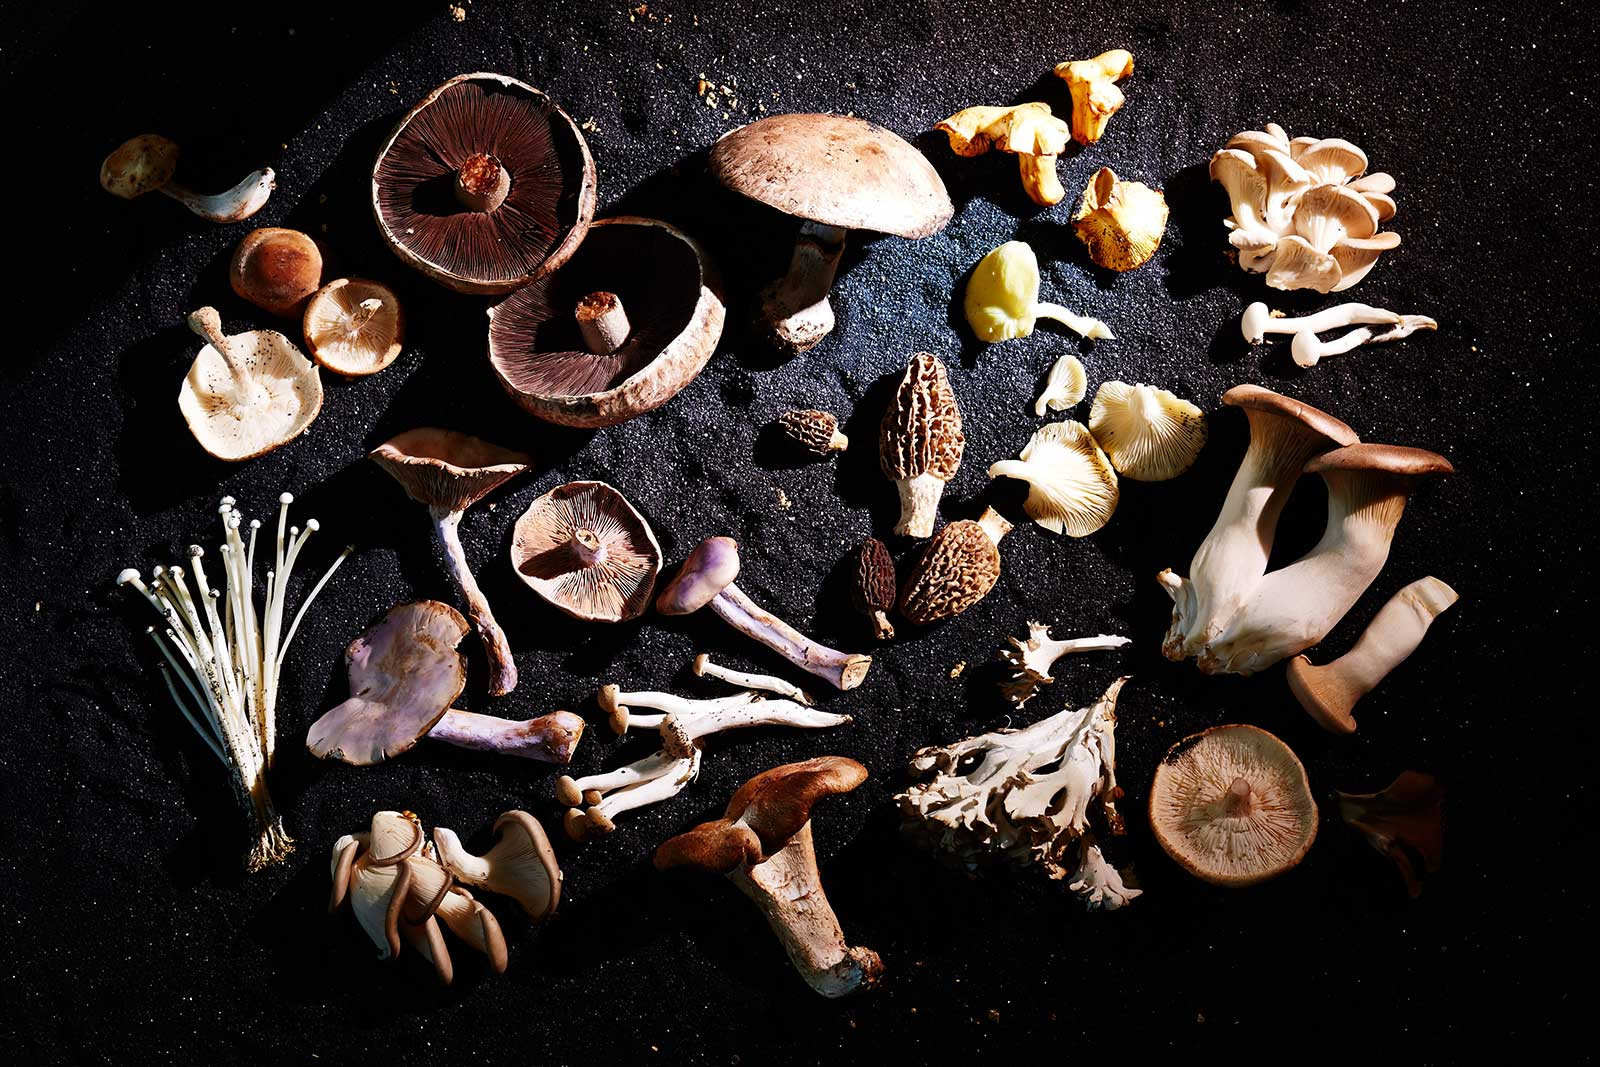 List of Mushroom Adaptogens and Benefits